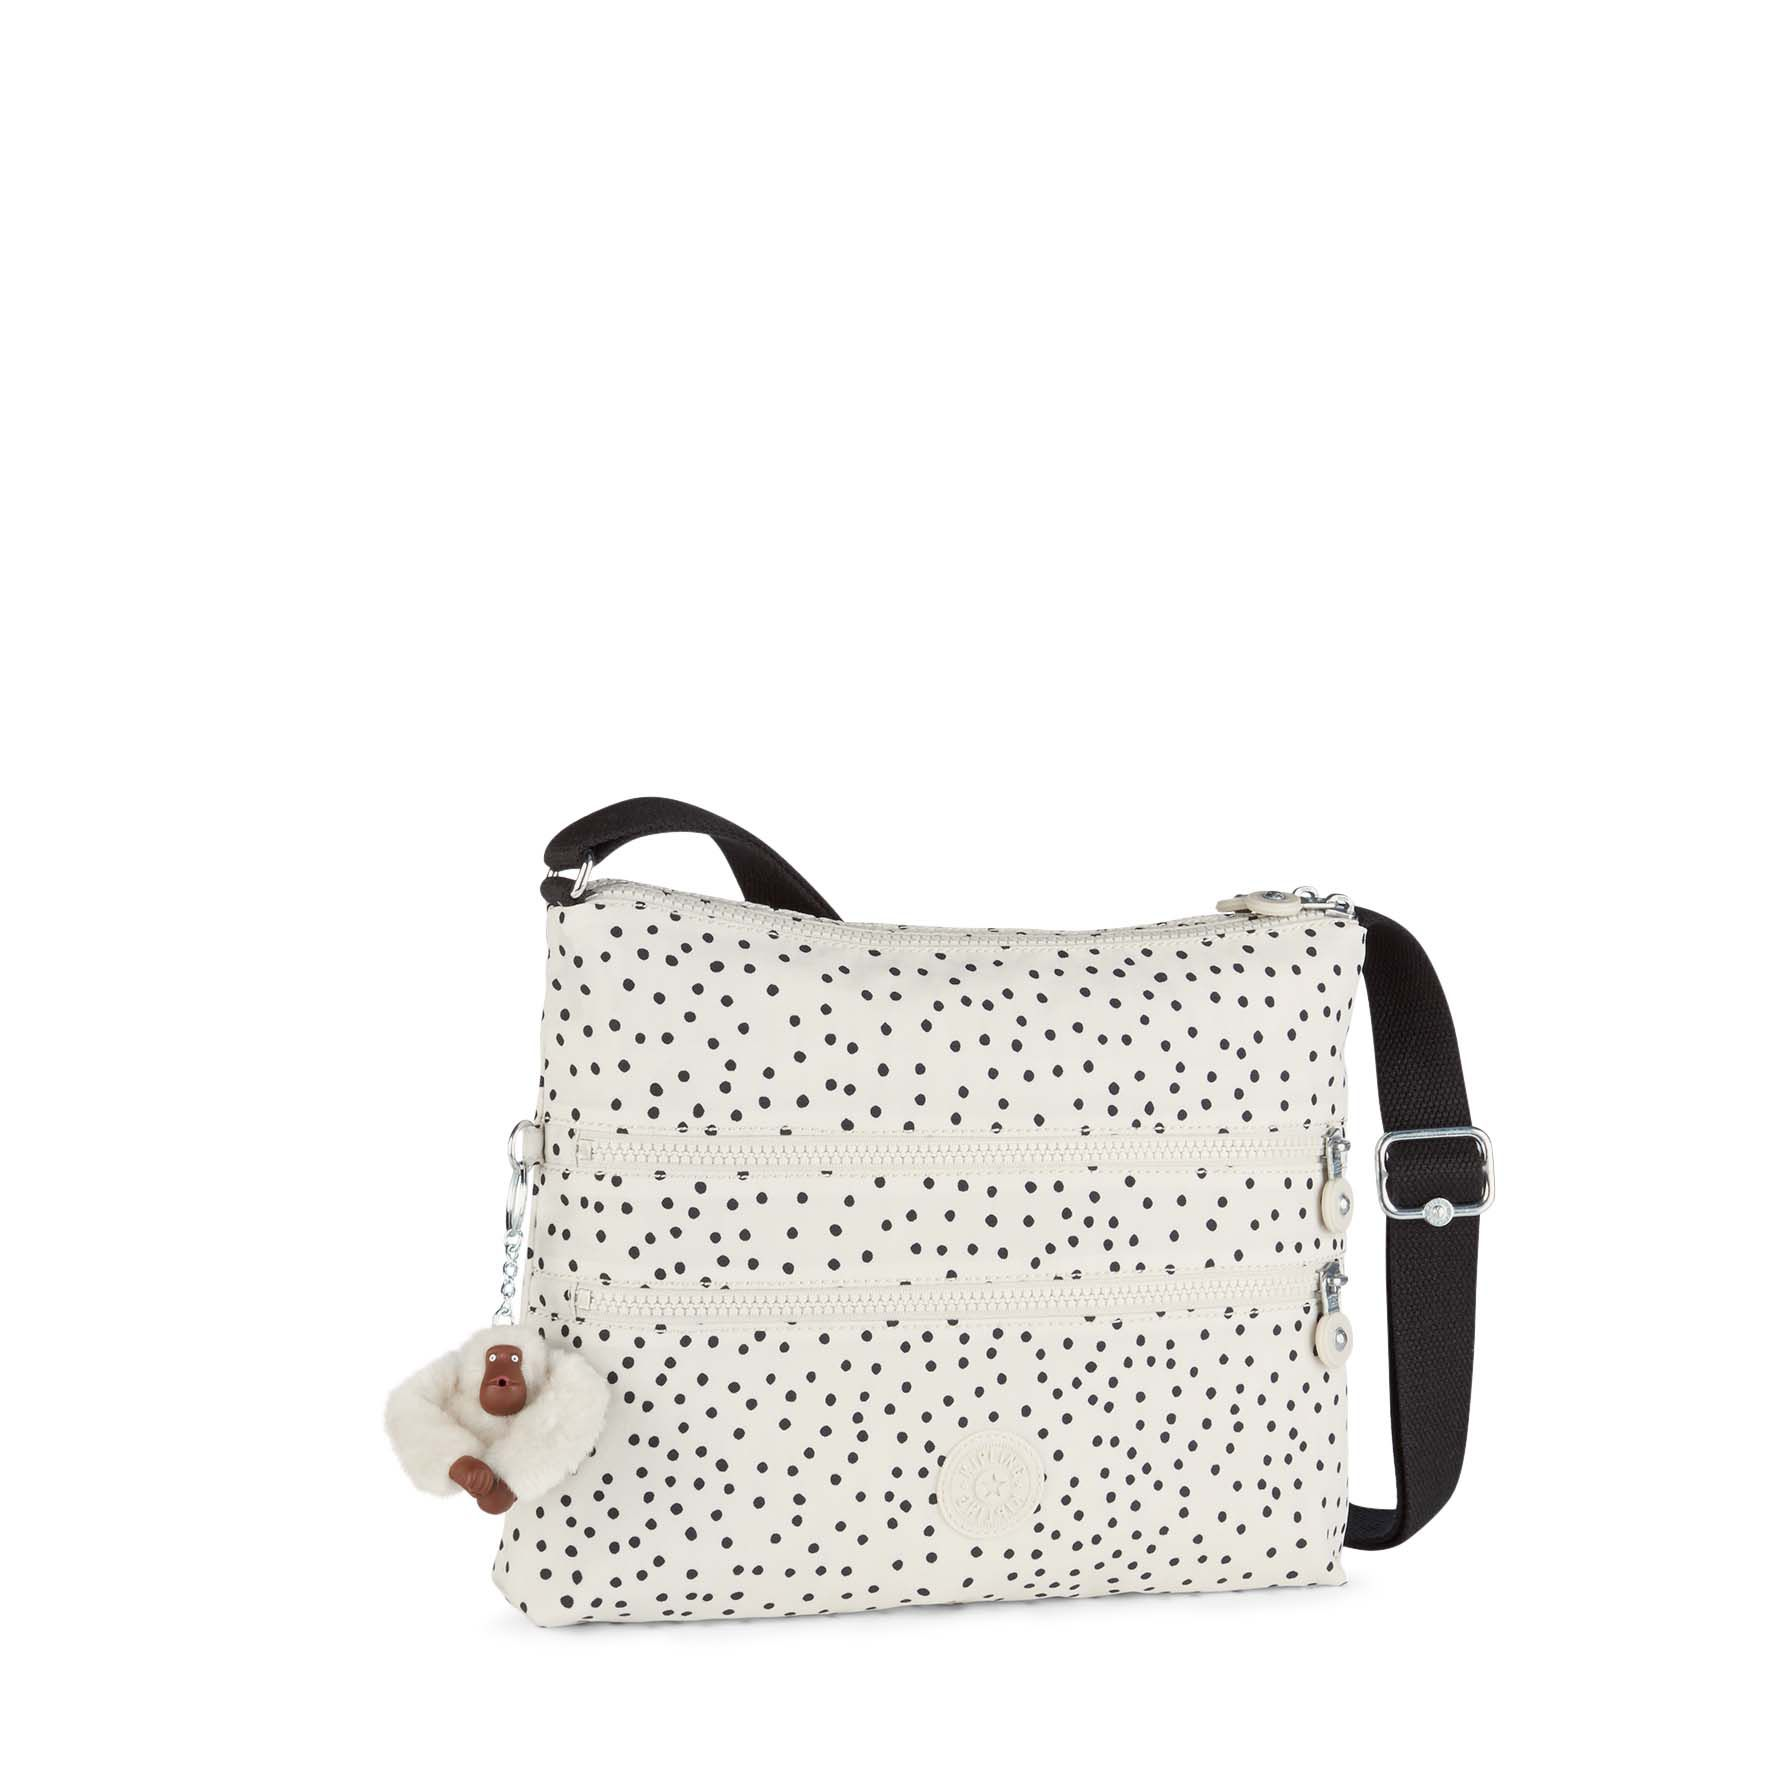 Kipling Alvar medium shoulder bag White